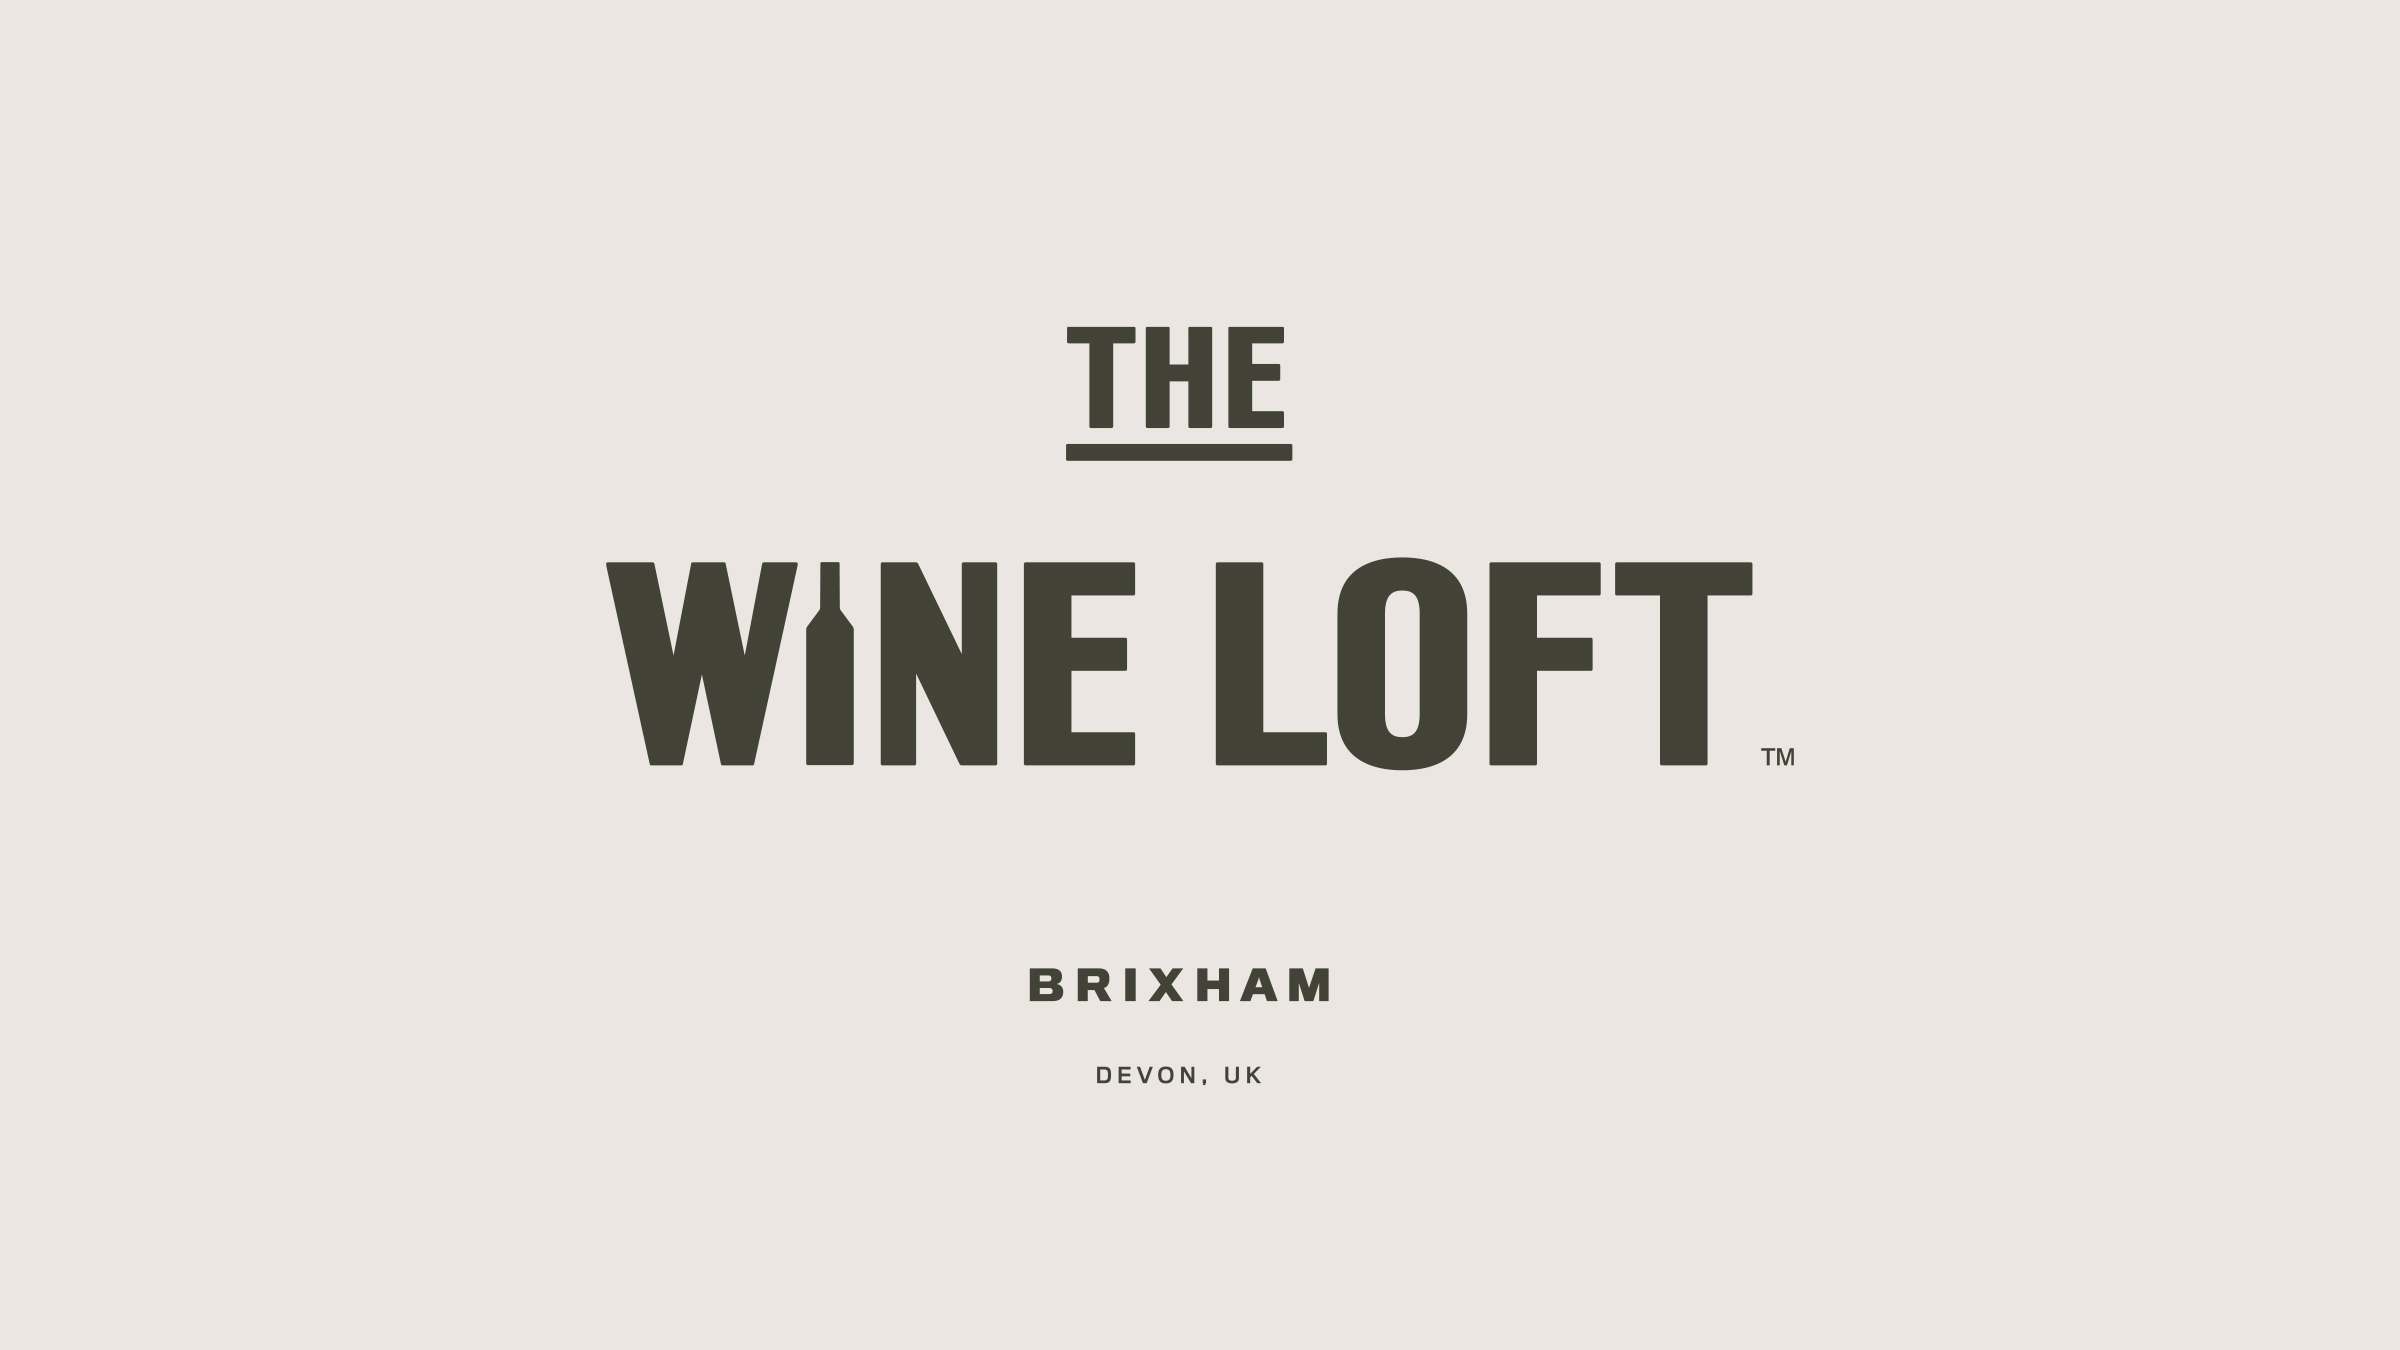 The Wine Loft brand logo green on cream